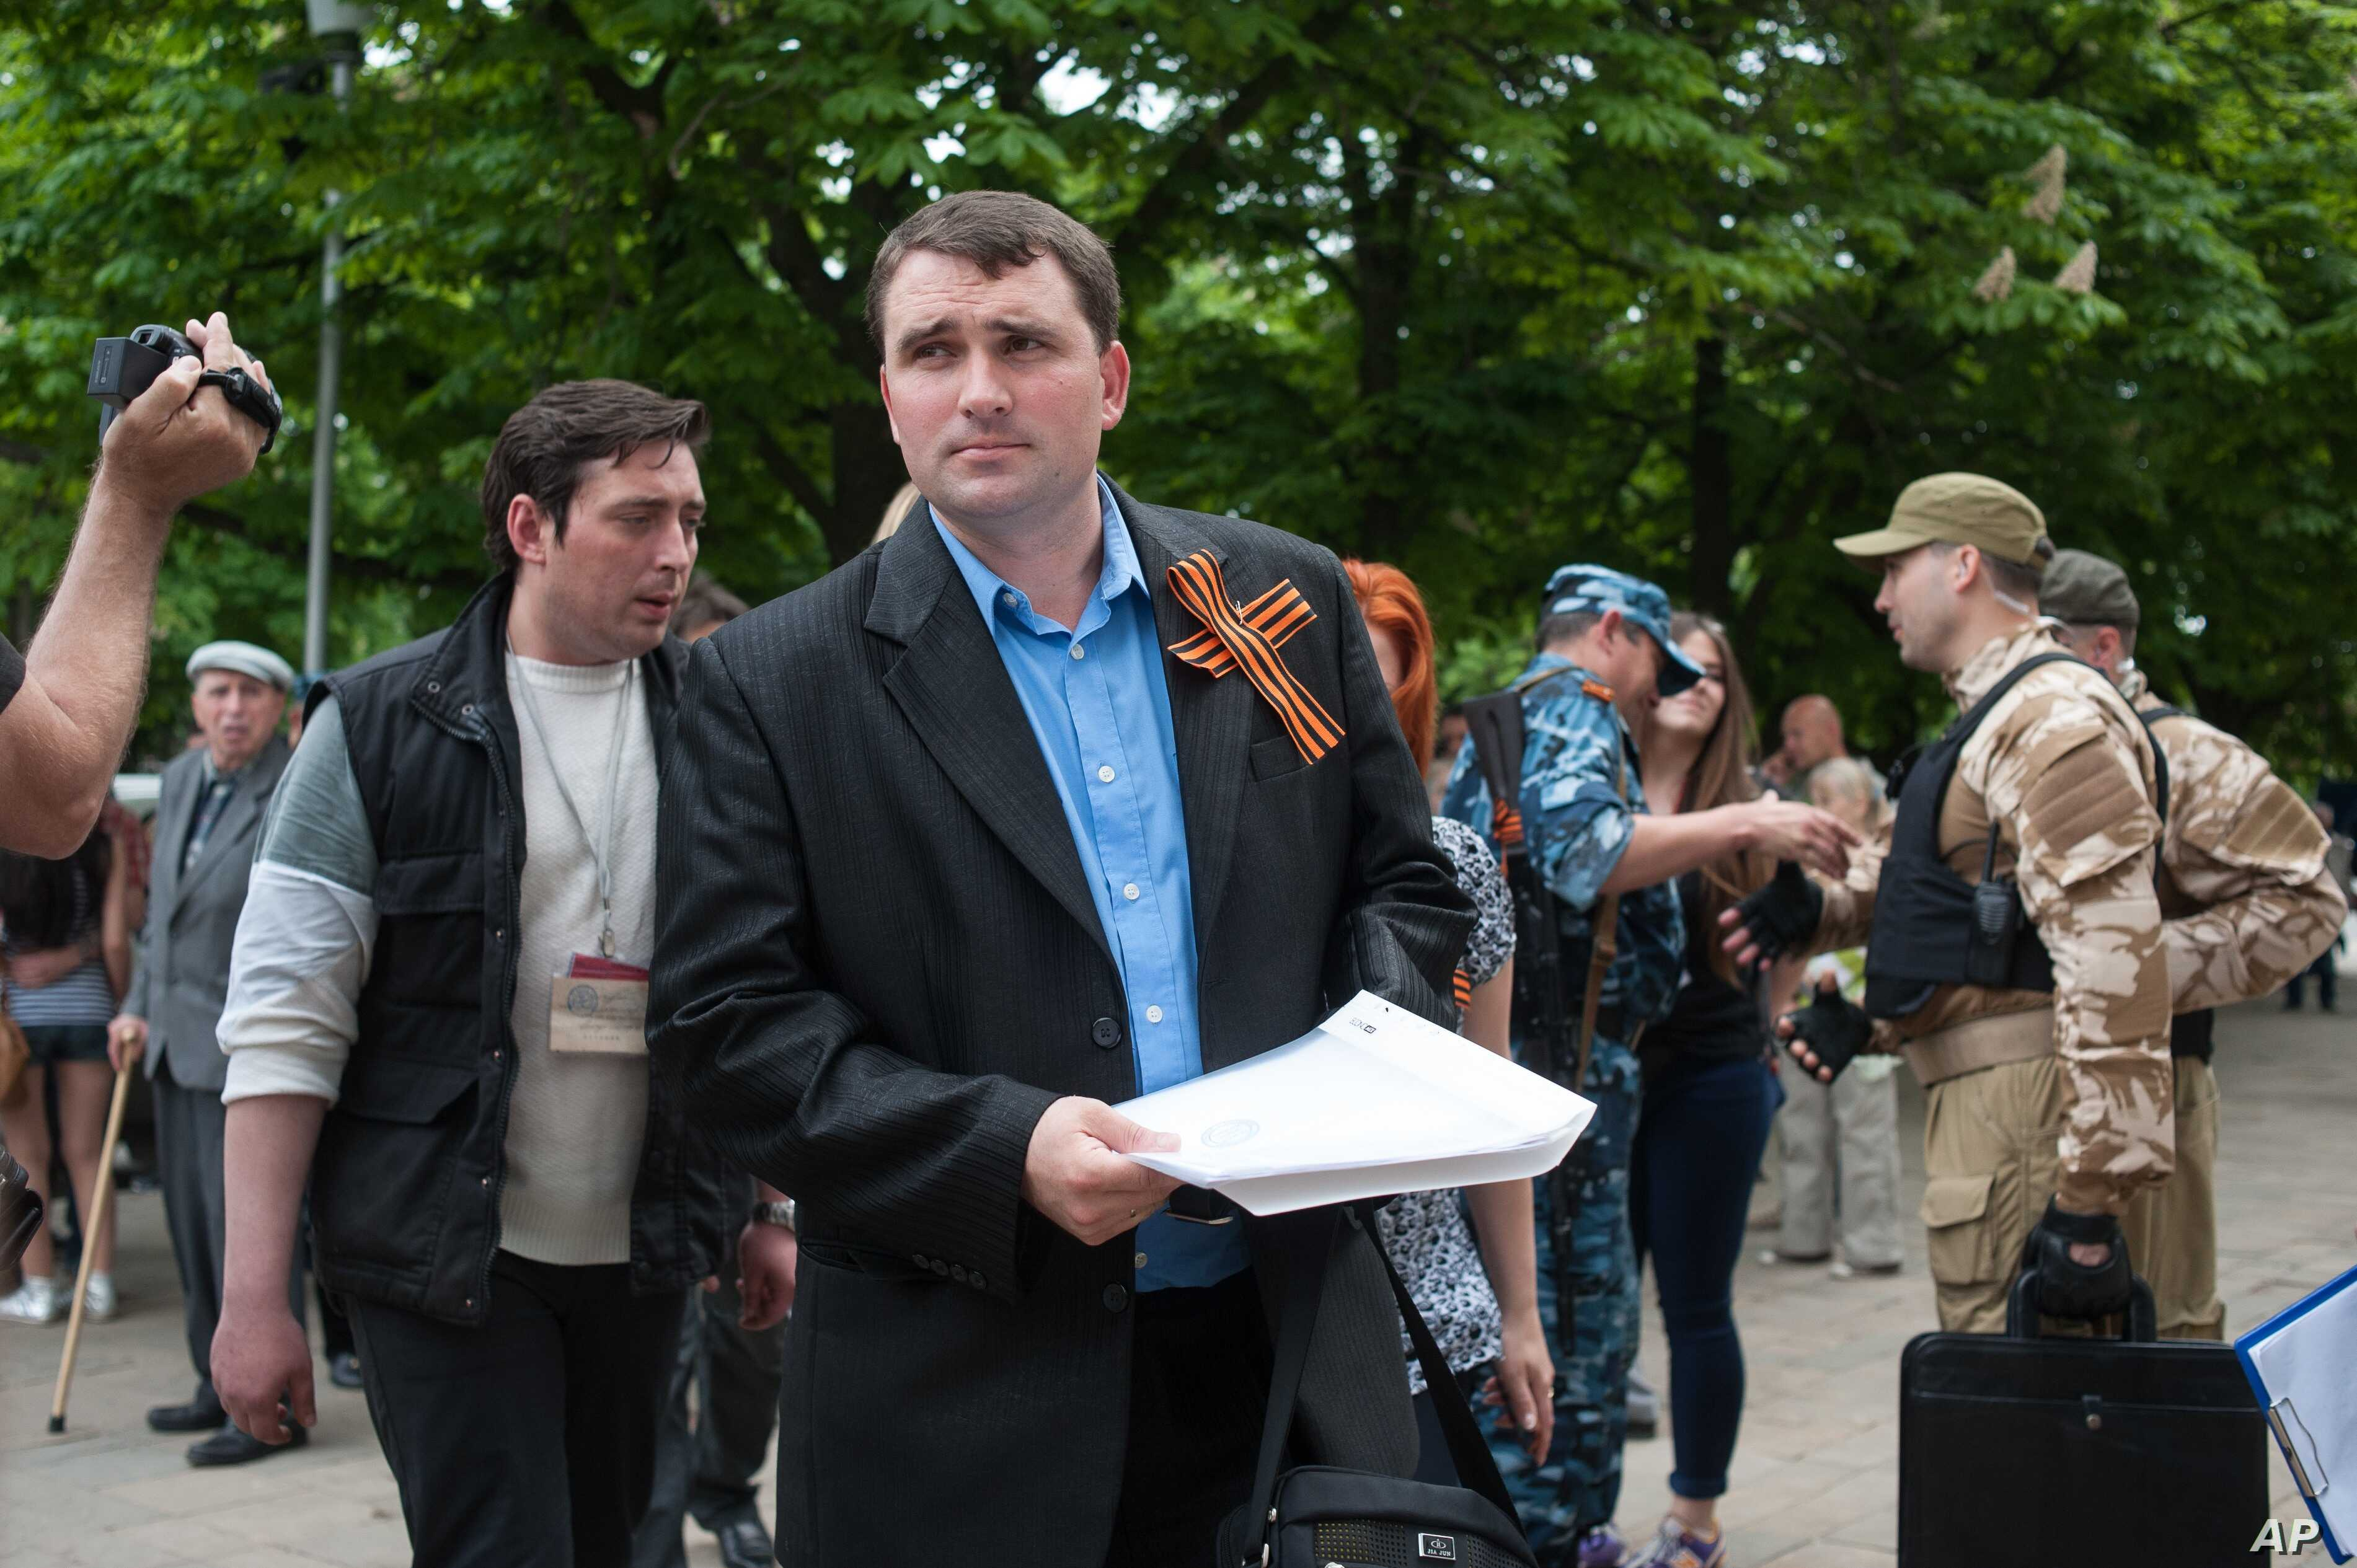 Secessionist referendum official Alexander Malyhin holds a document as he speaks to journalists in the eastern Ukrainian city of Luhansk May 12, 2014.